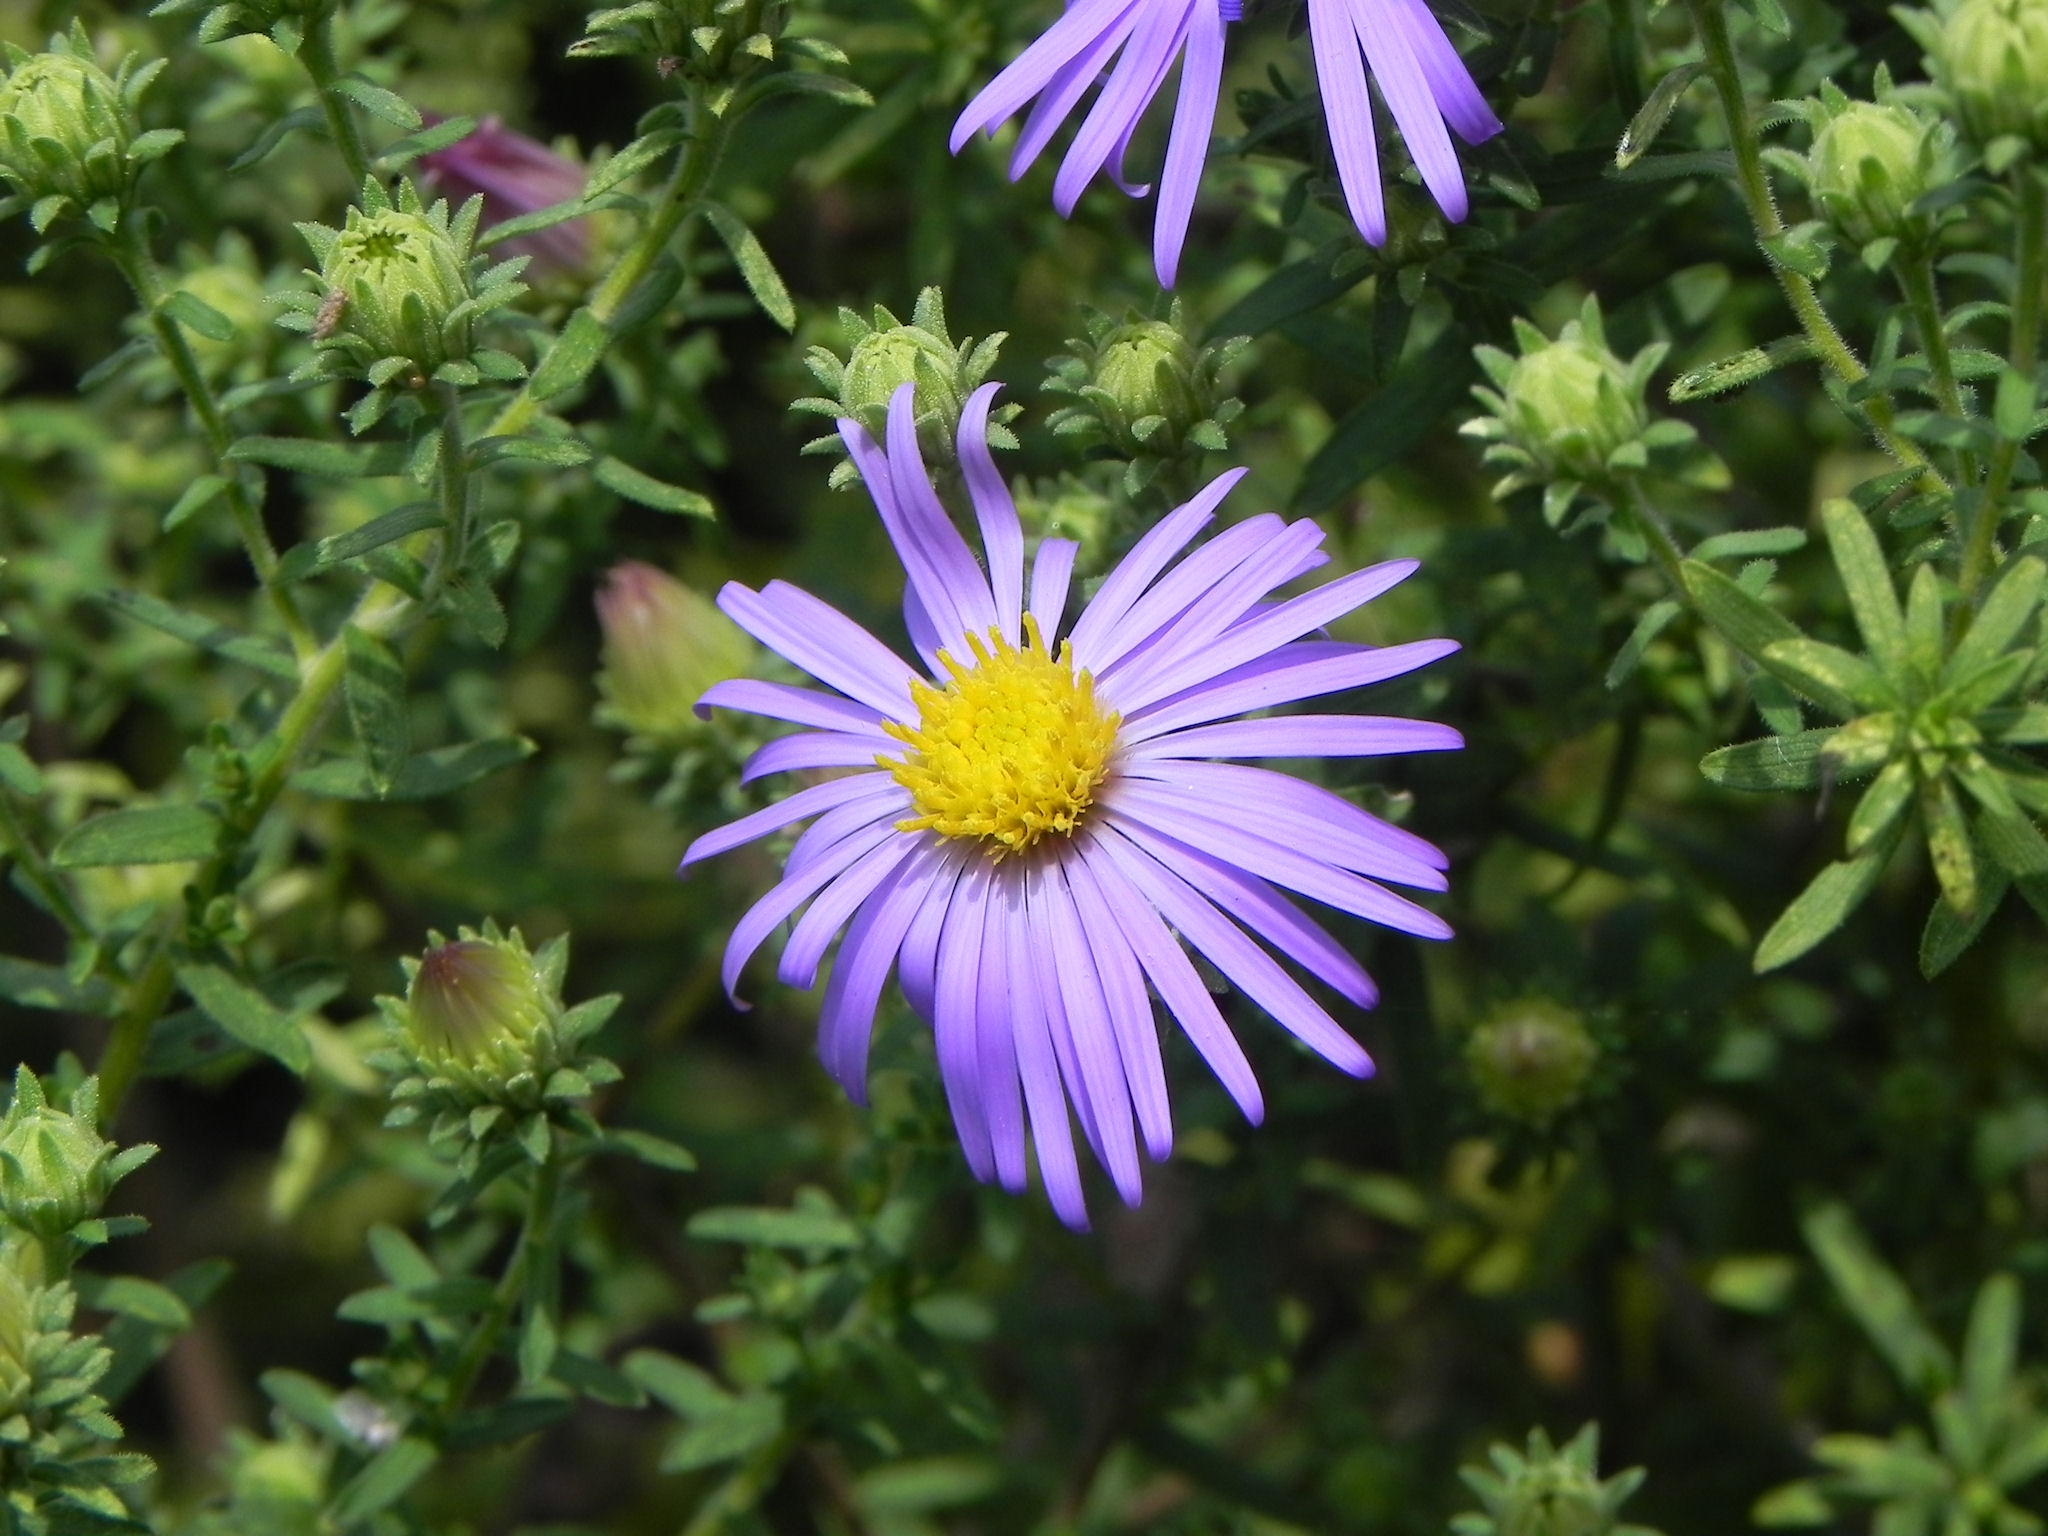 purple flower of aster  nature photo gallery, Beautiful flower